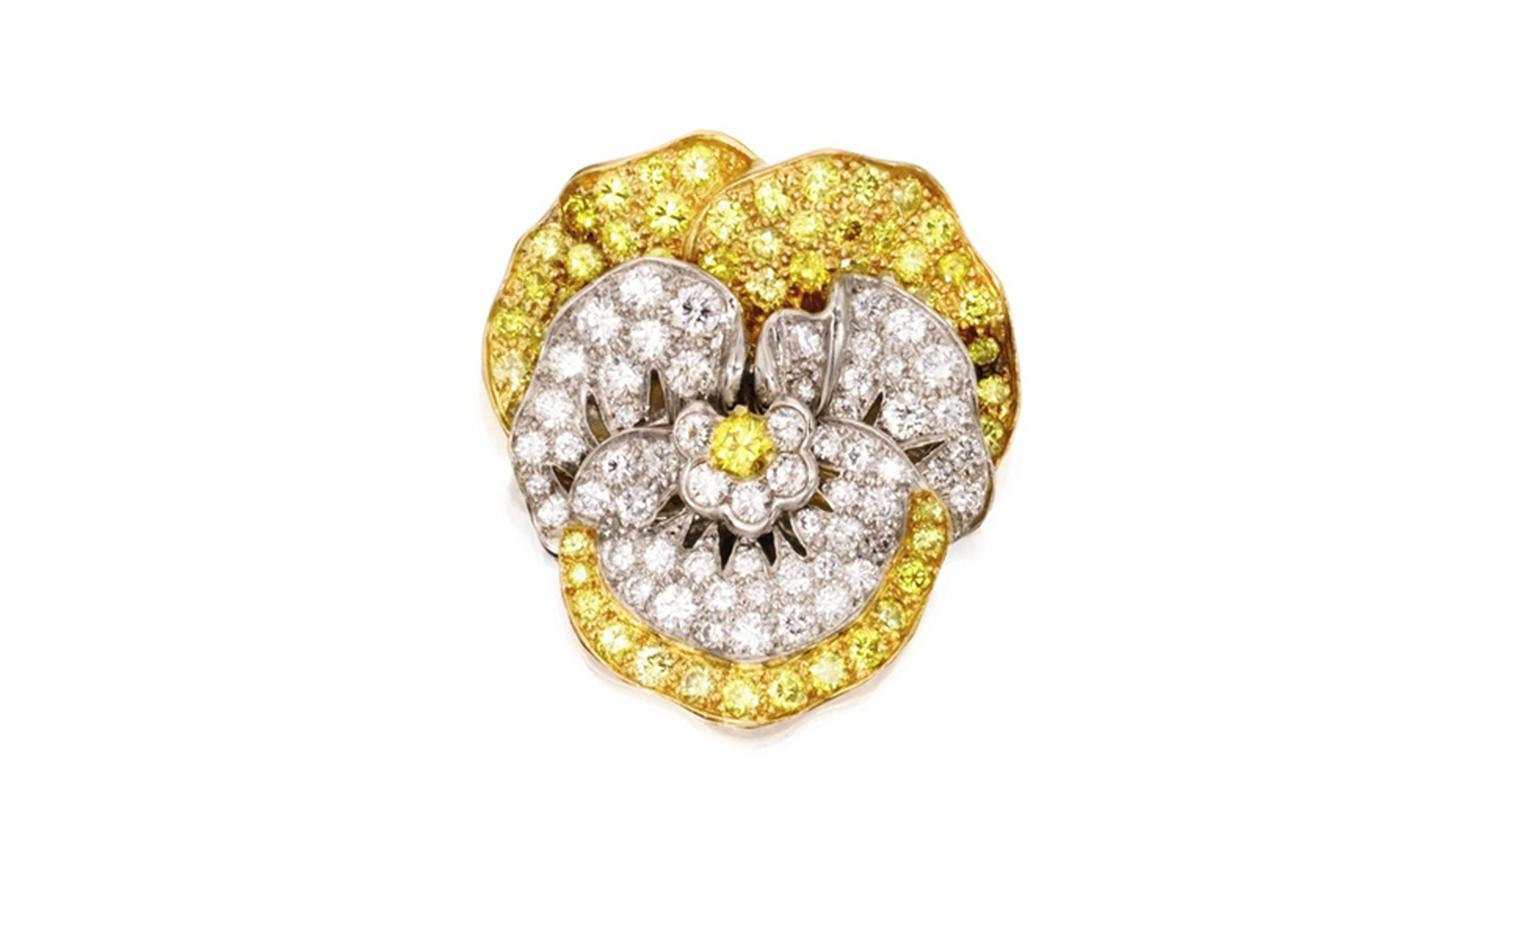 Lot 279. Gold, platinum diamond and colorad diamond pansy brooch. Est. $10/15,000